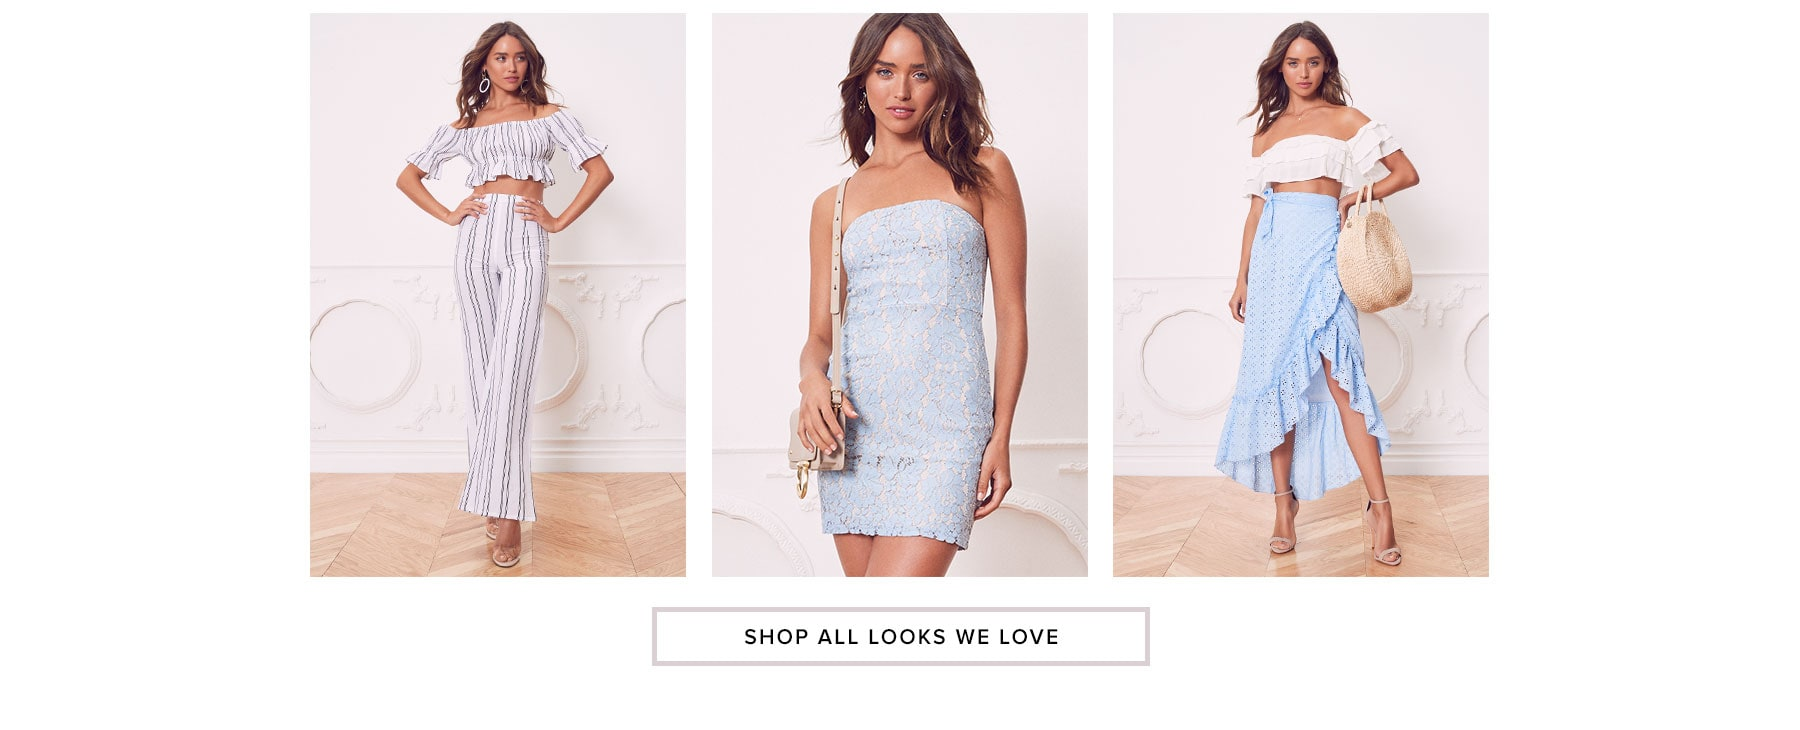 Shop all looks we love.